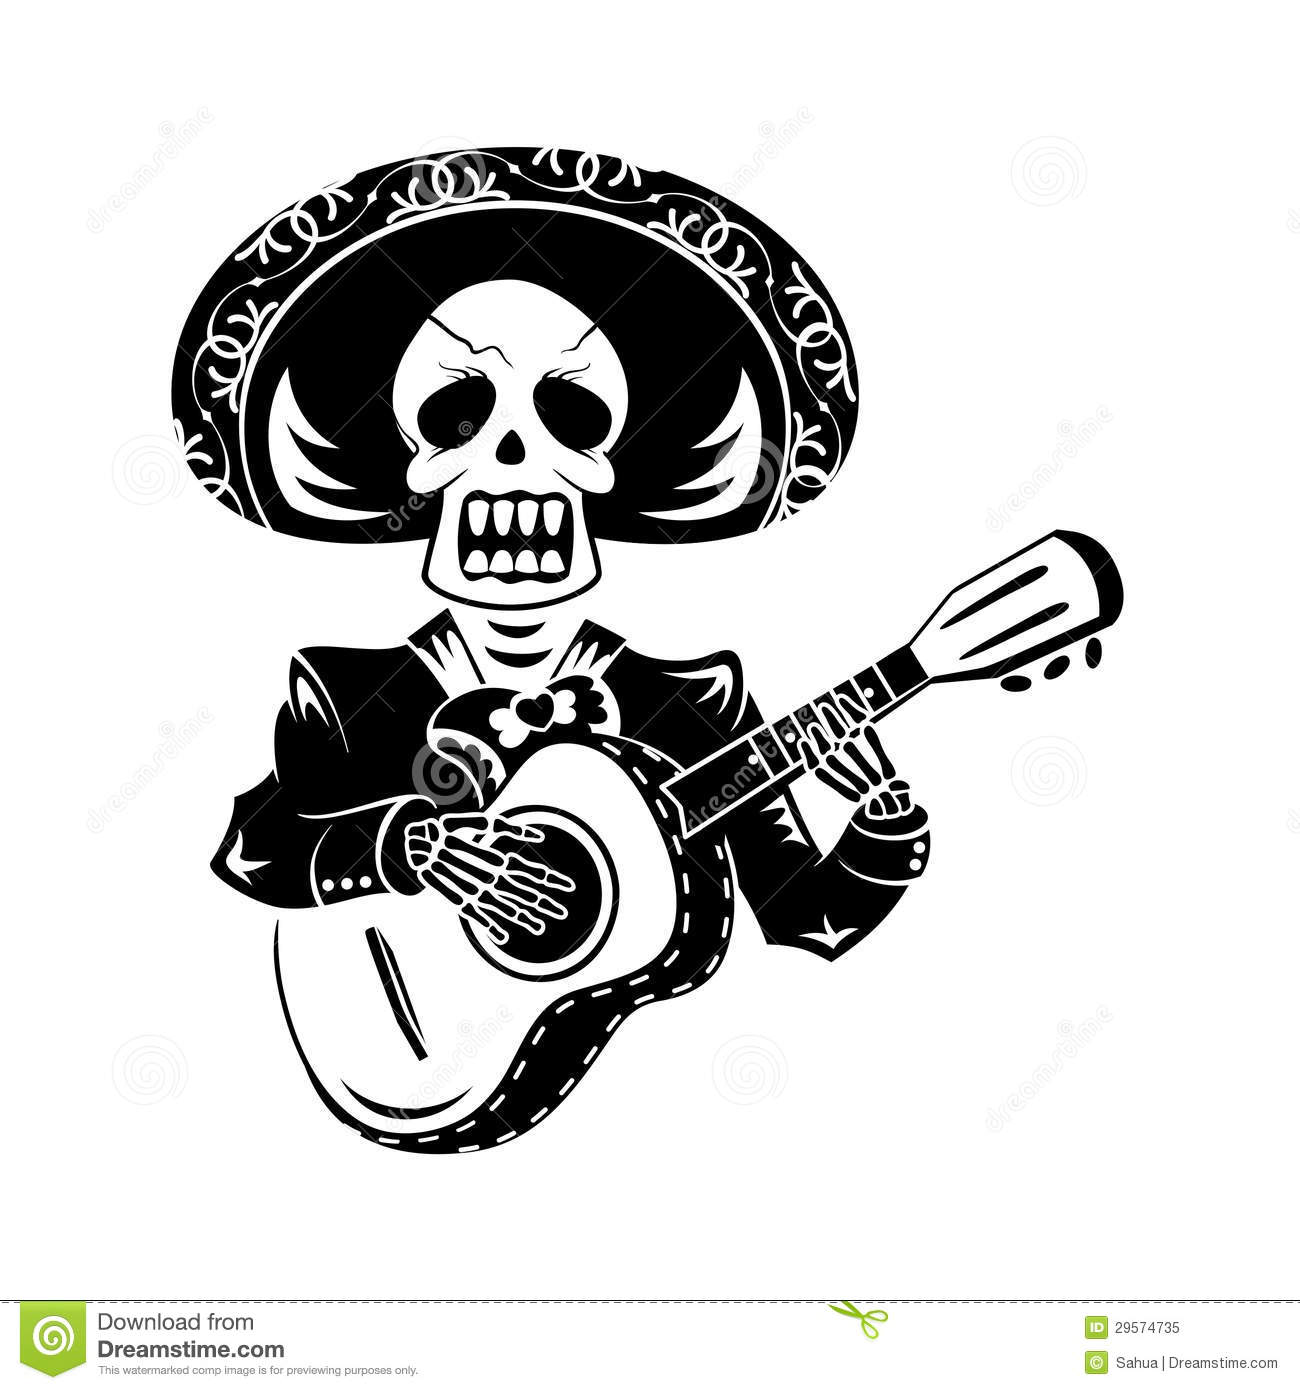 Mariachi Guitar Player Royalty Free Stock Photo - Image: 29574735